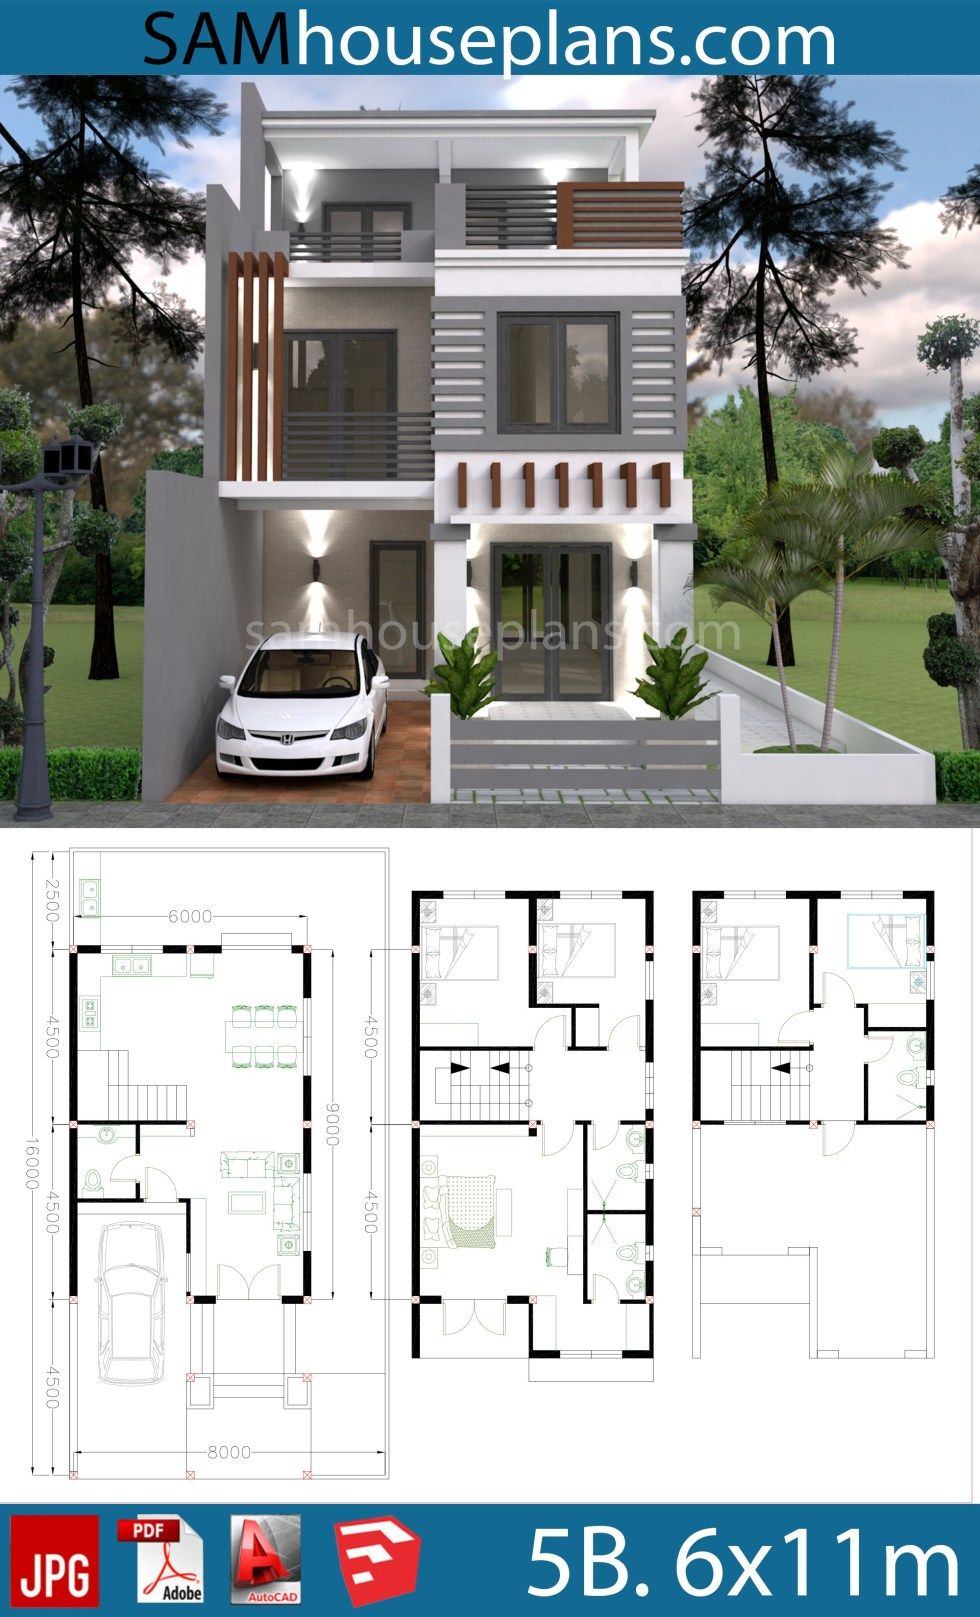 House Plans 6x11m with 5 Bedrooms Plot 8x16m - Sam House Plans | Duplex house  design, 3 storey house design, House construction plan